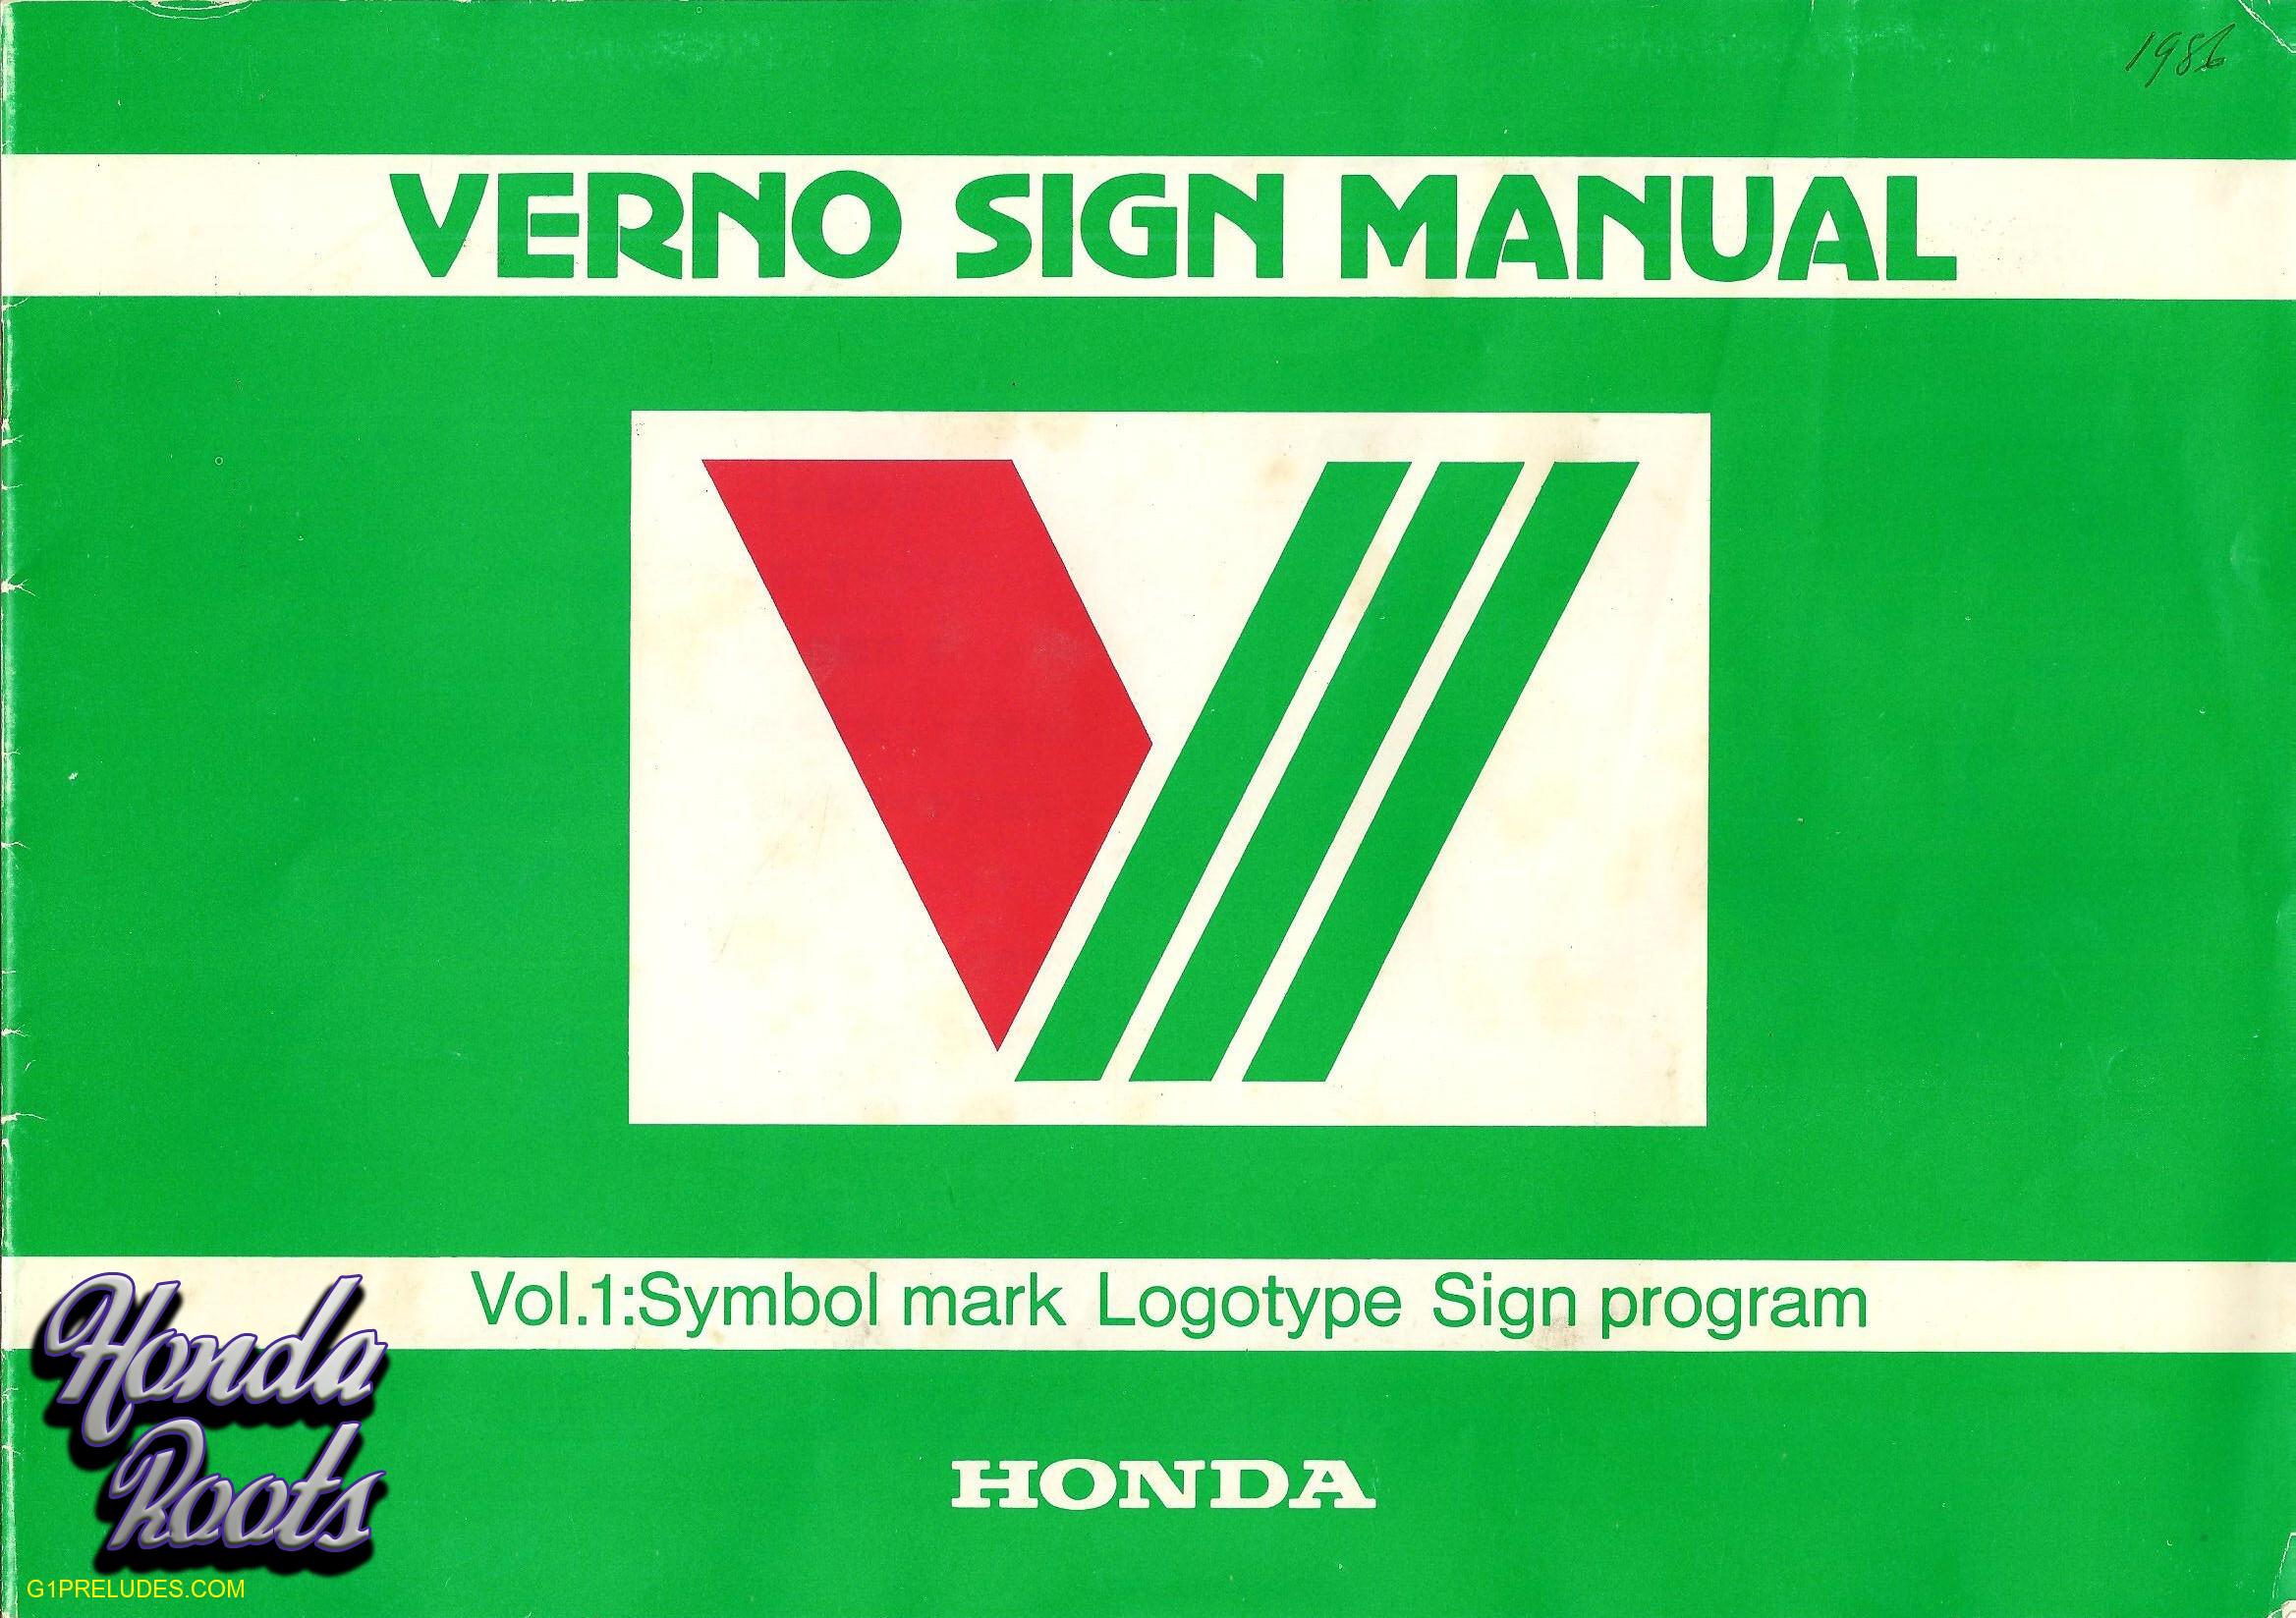 A Brief History of Honda Verno Dealerships